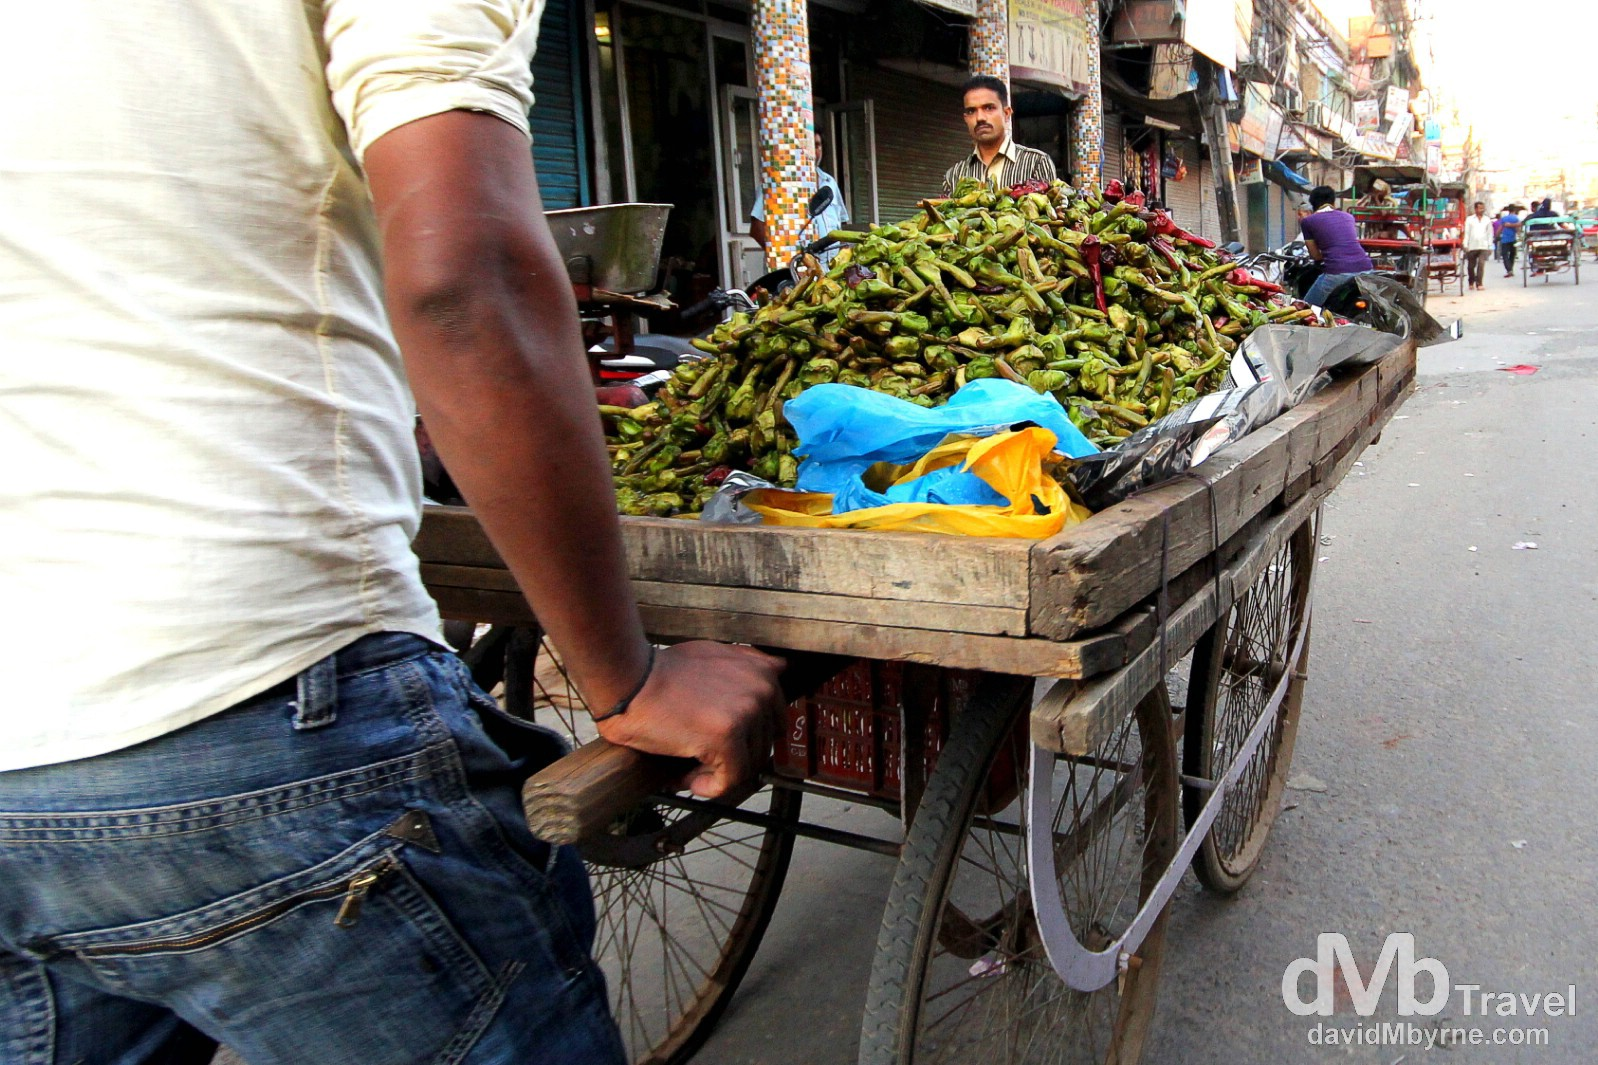 A produce cart on the streets of Old Delhi, Delhi, India. October 7th 2012.